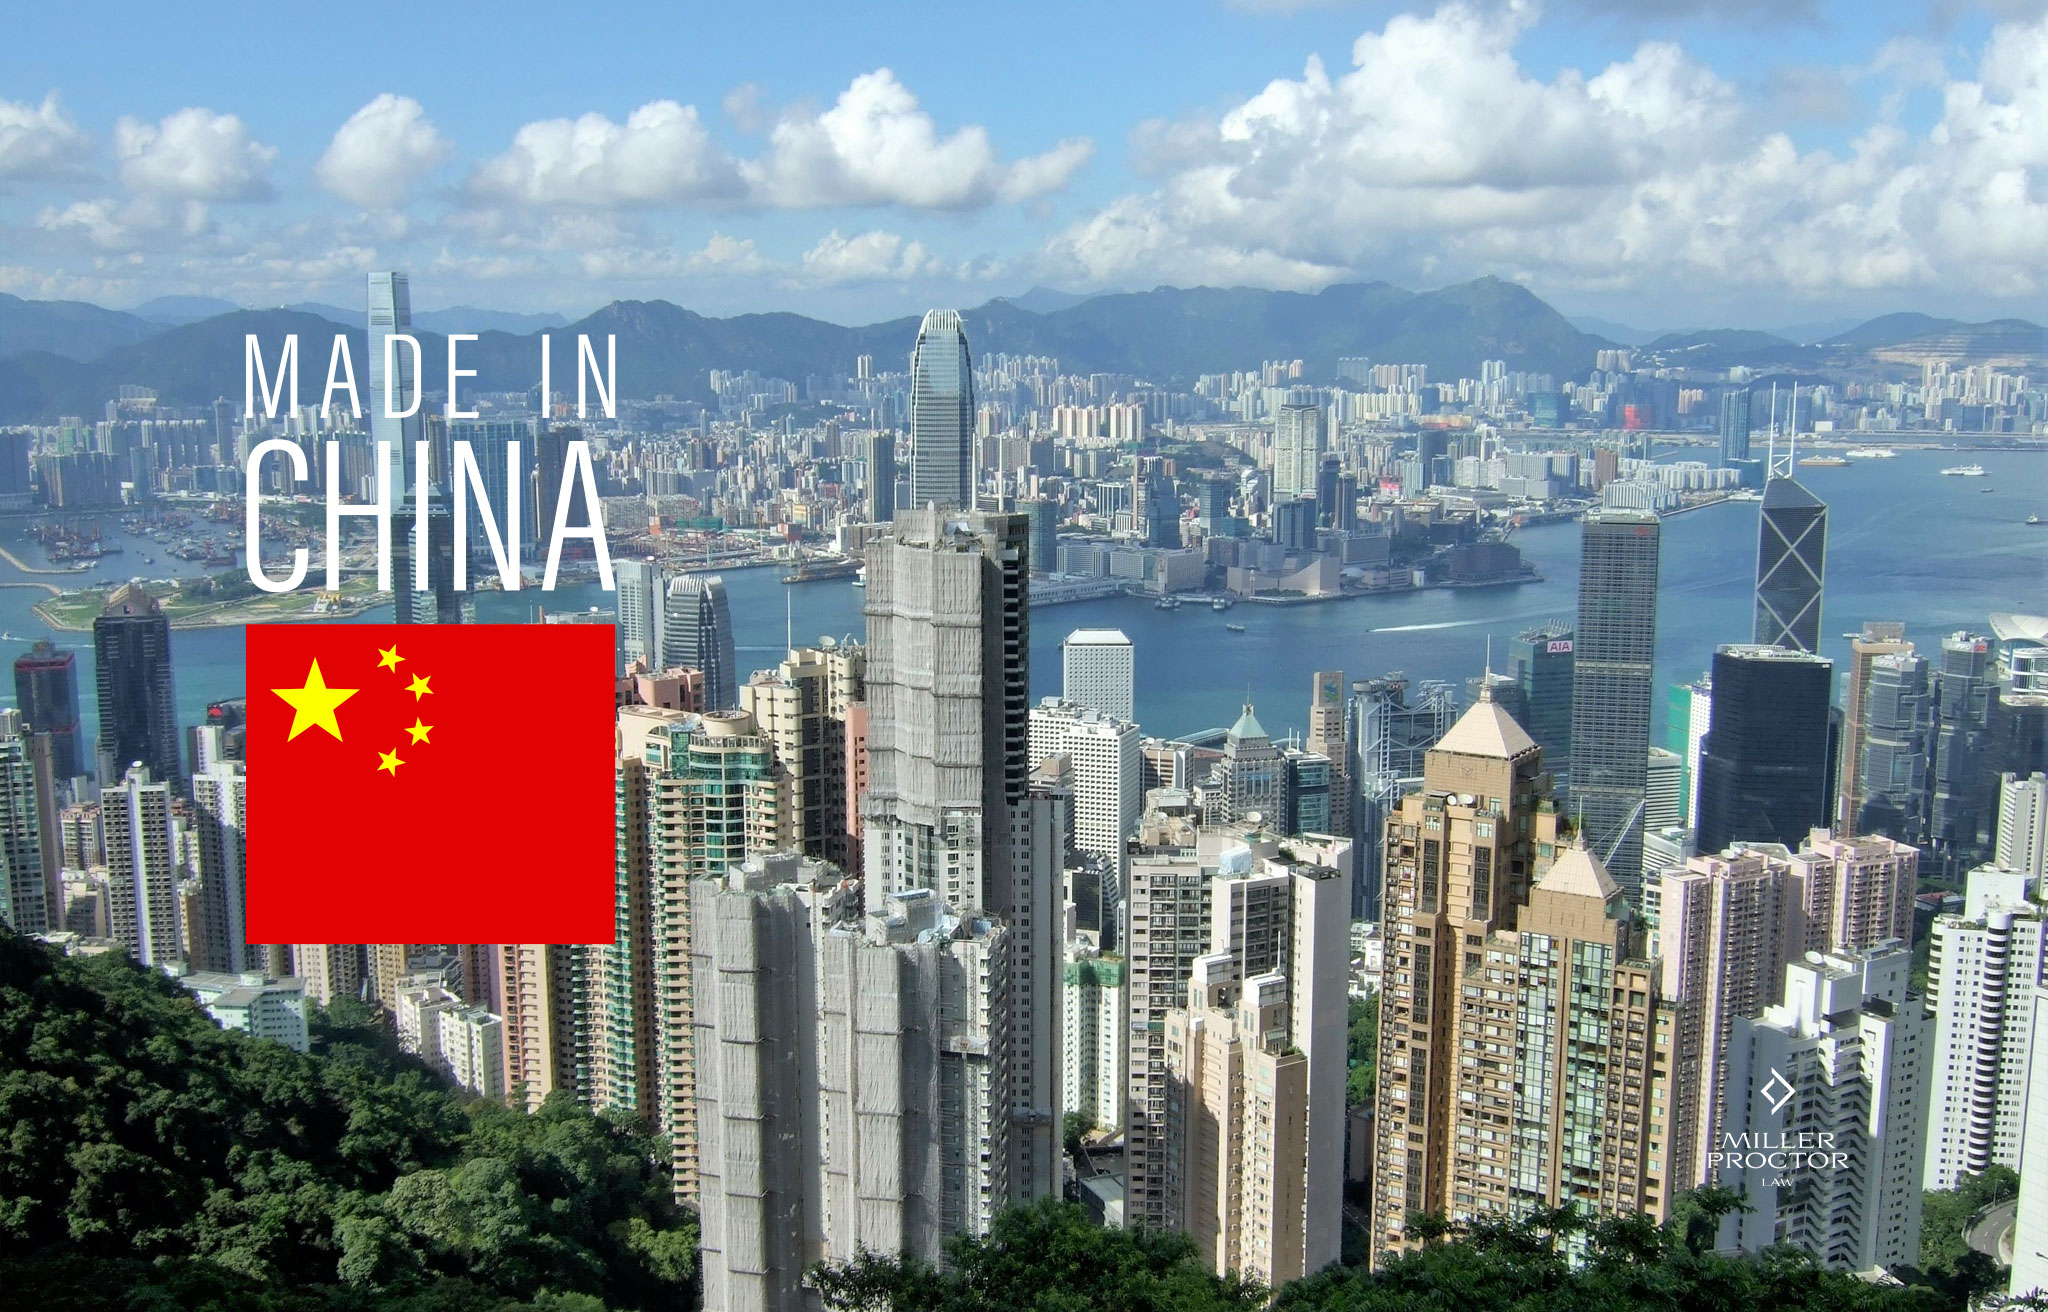 Customs Announces New Country of Origin Marking Requirements for Imported Goods Produced in Hong Kong